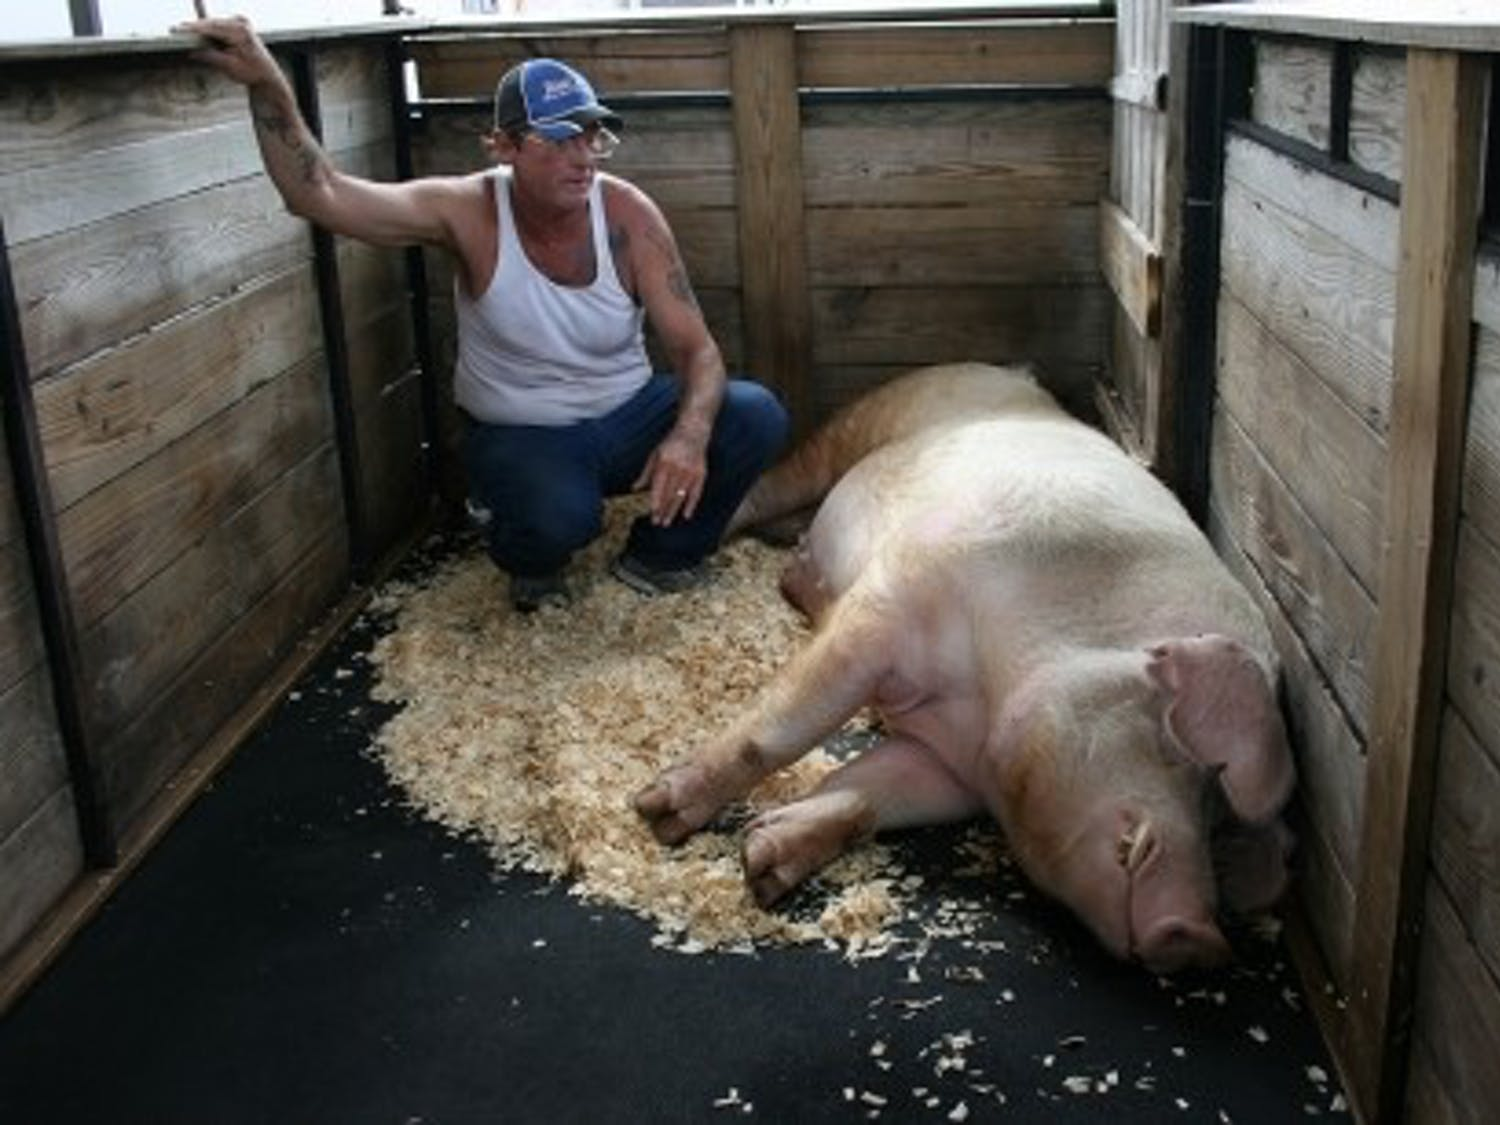 File photo ofJohn Wadsworth, along with Bubba the pig, from the 2013 state fair.